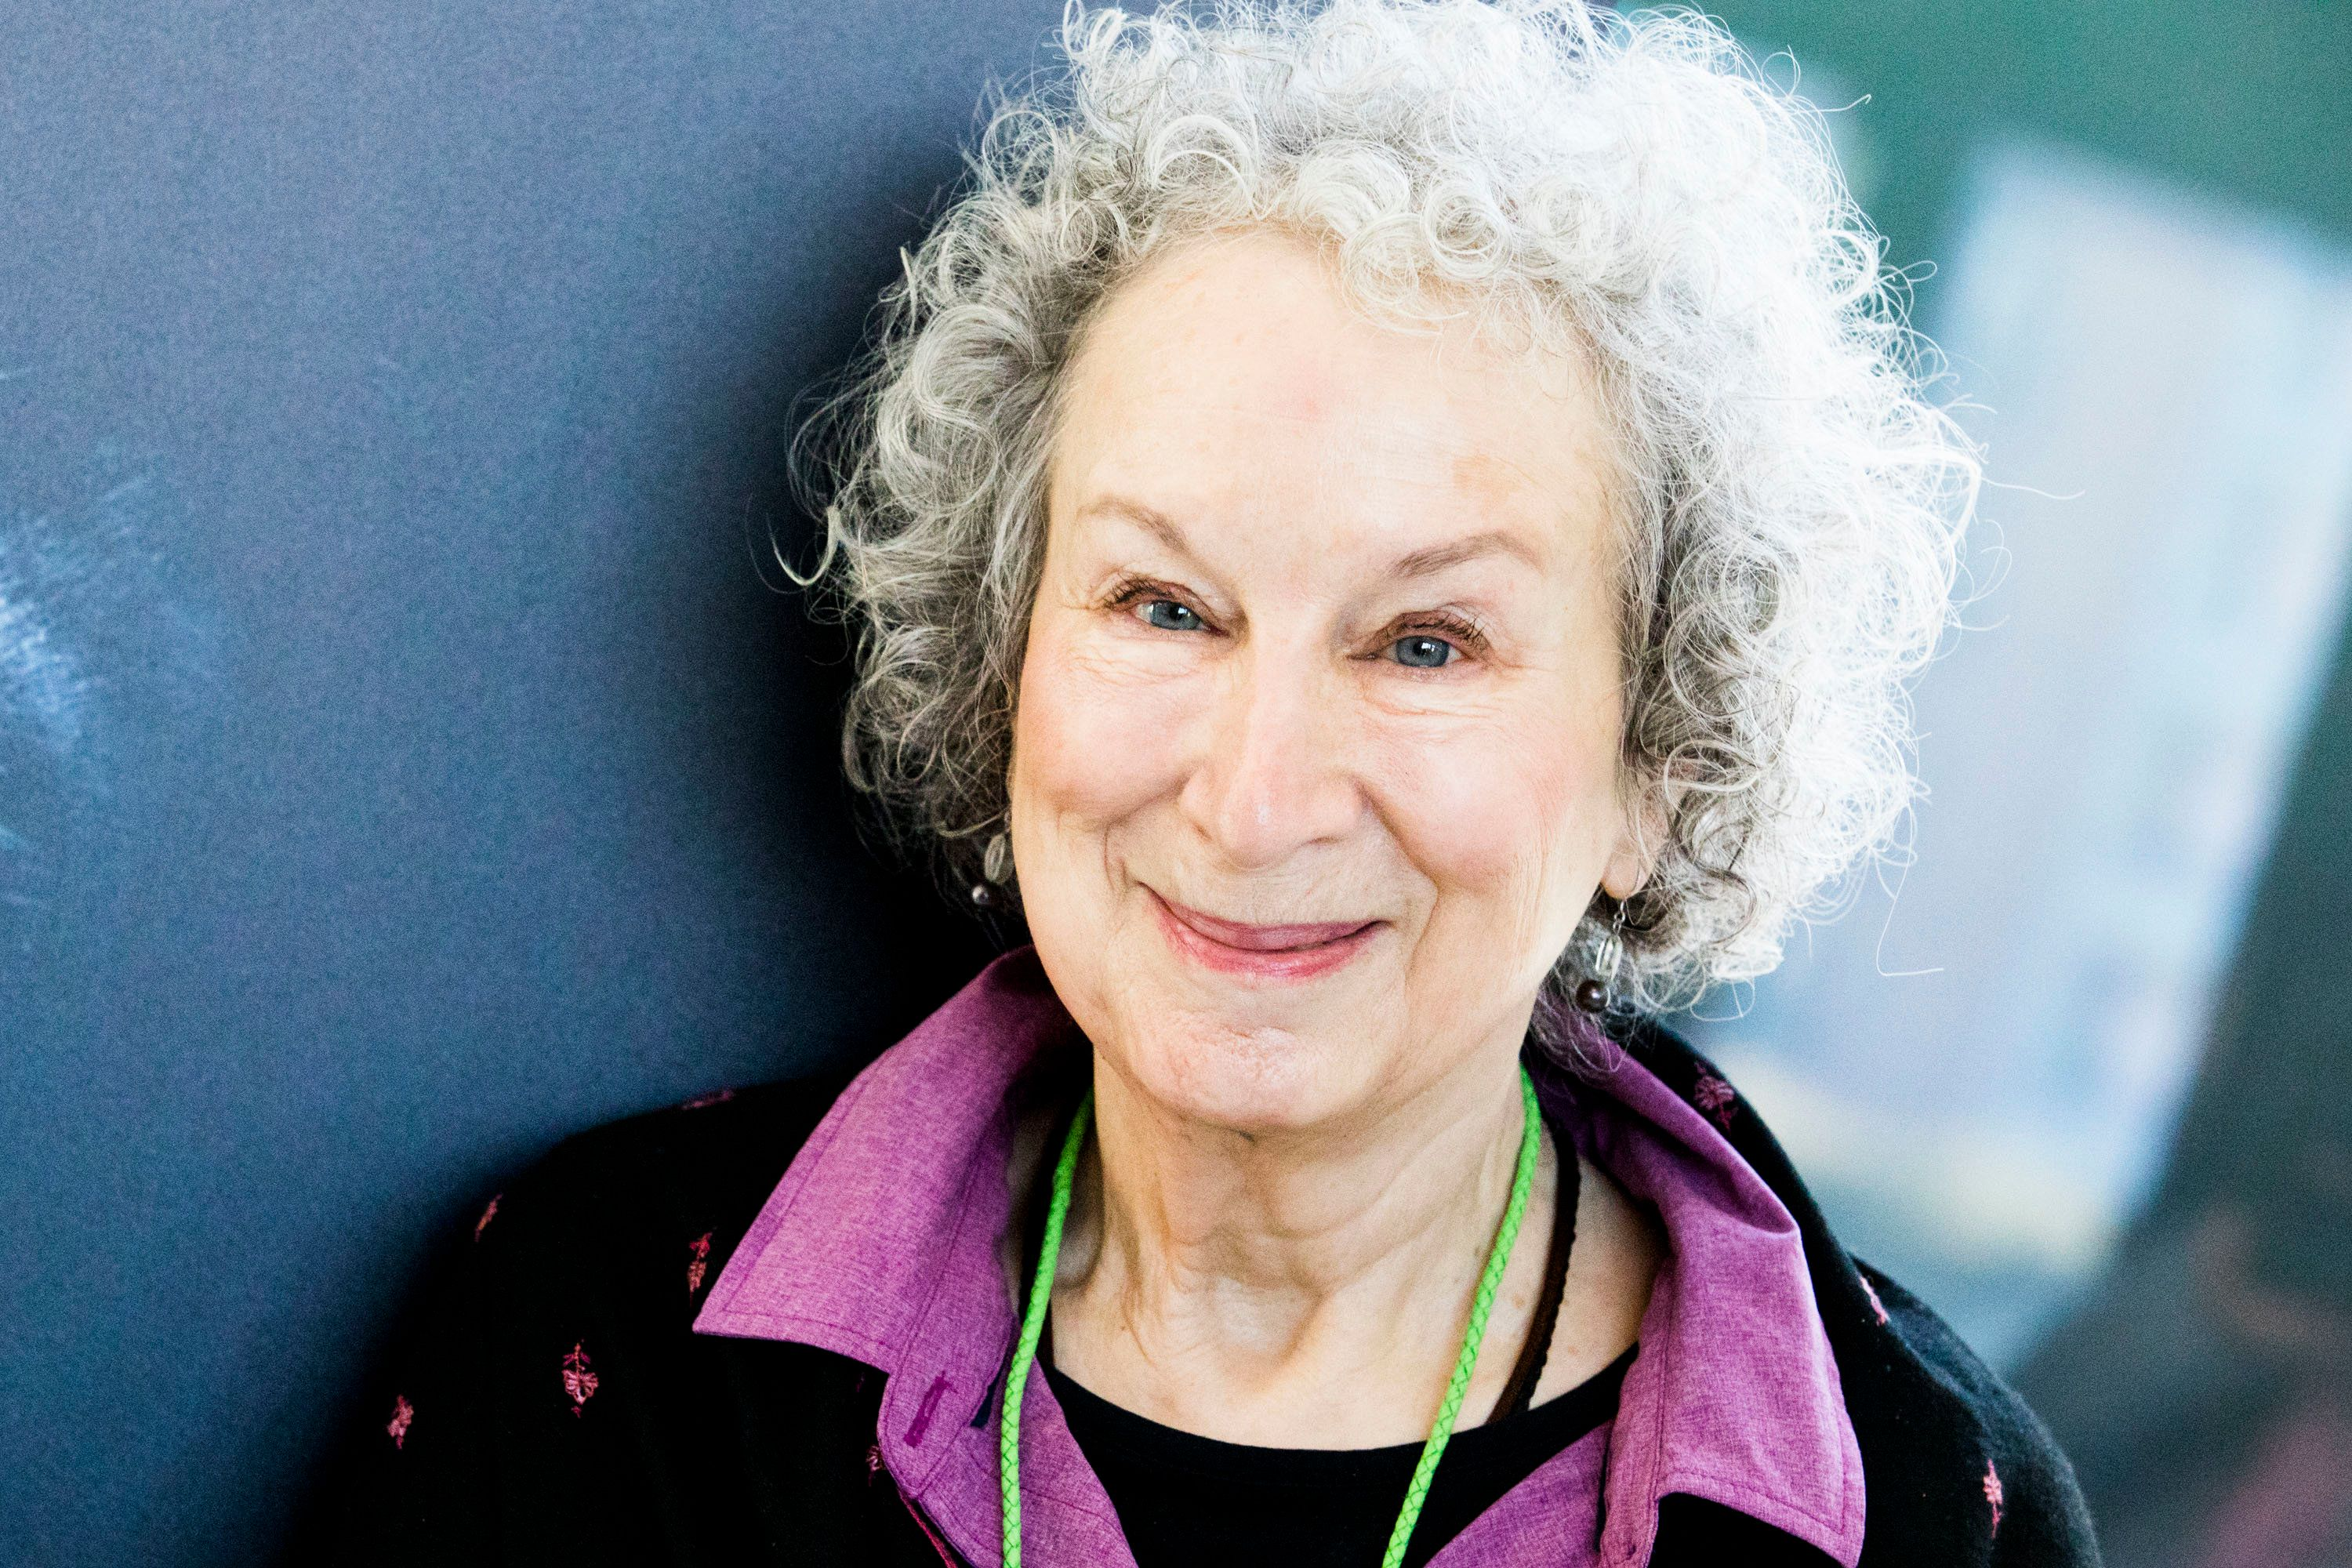 """Author Margaret Atwood announced Wednesday that her sequel to """"The Handmaid's Tale,"""" titled """"The Testaments,"""" wil"""